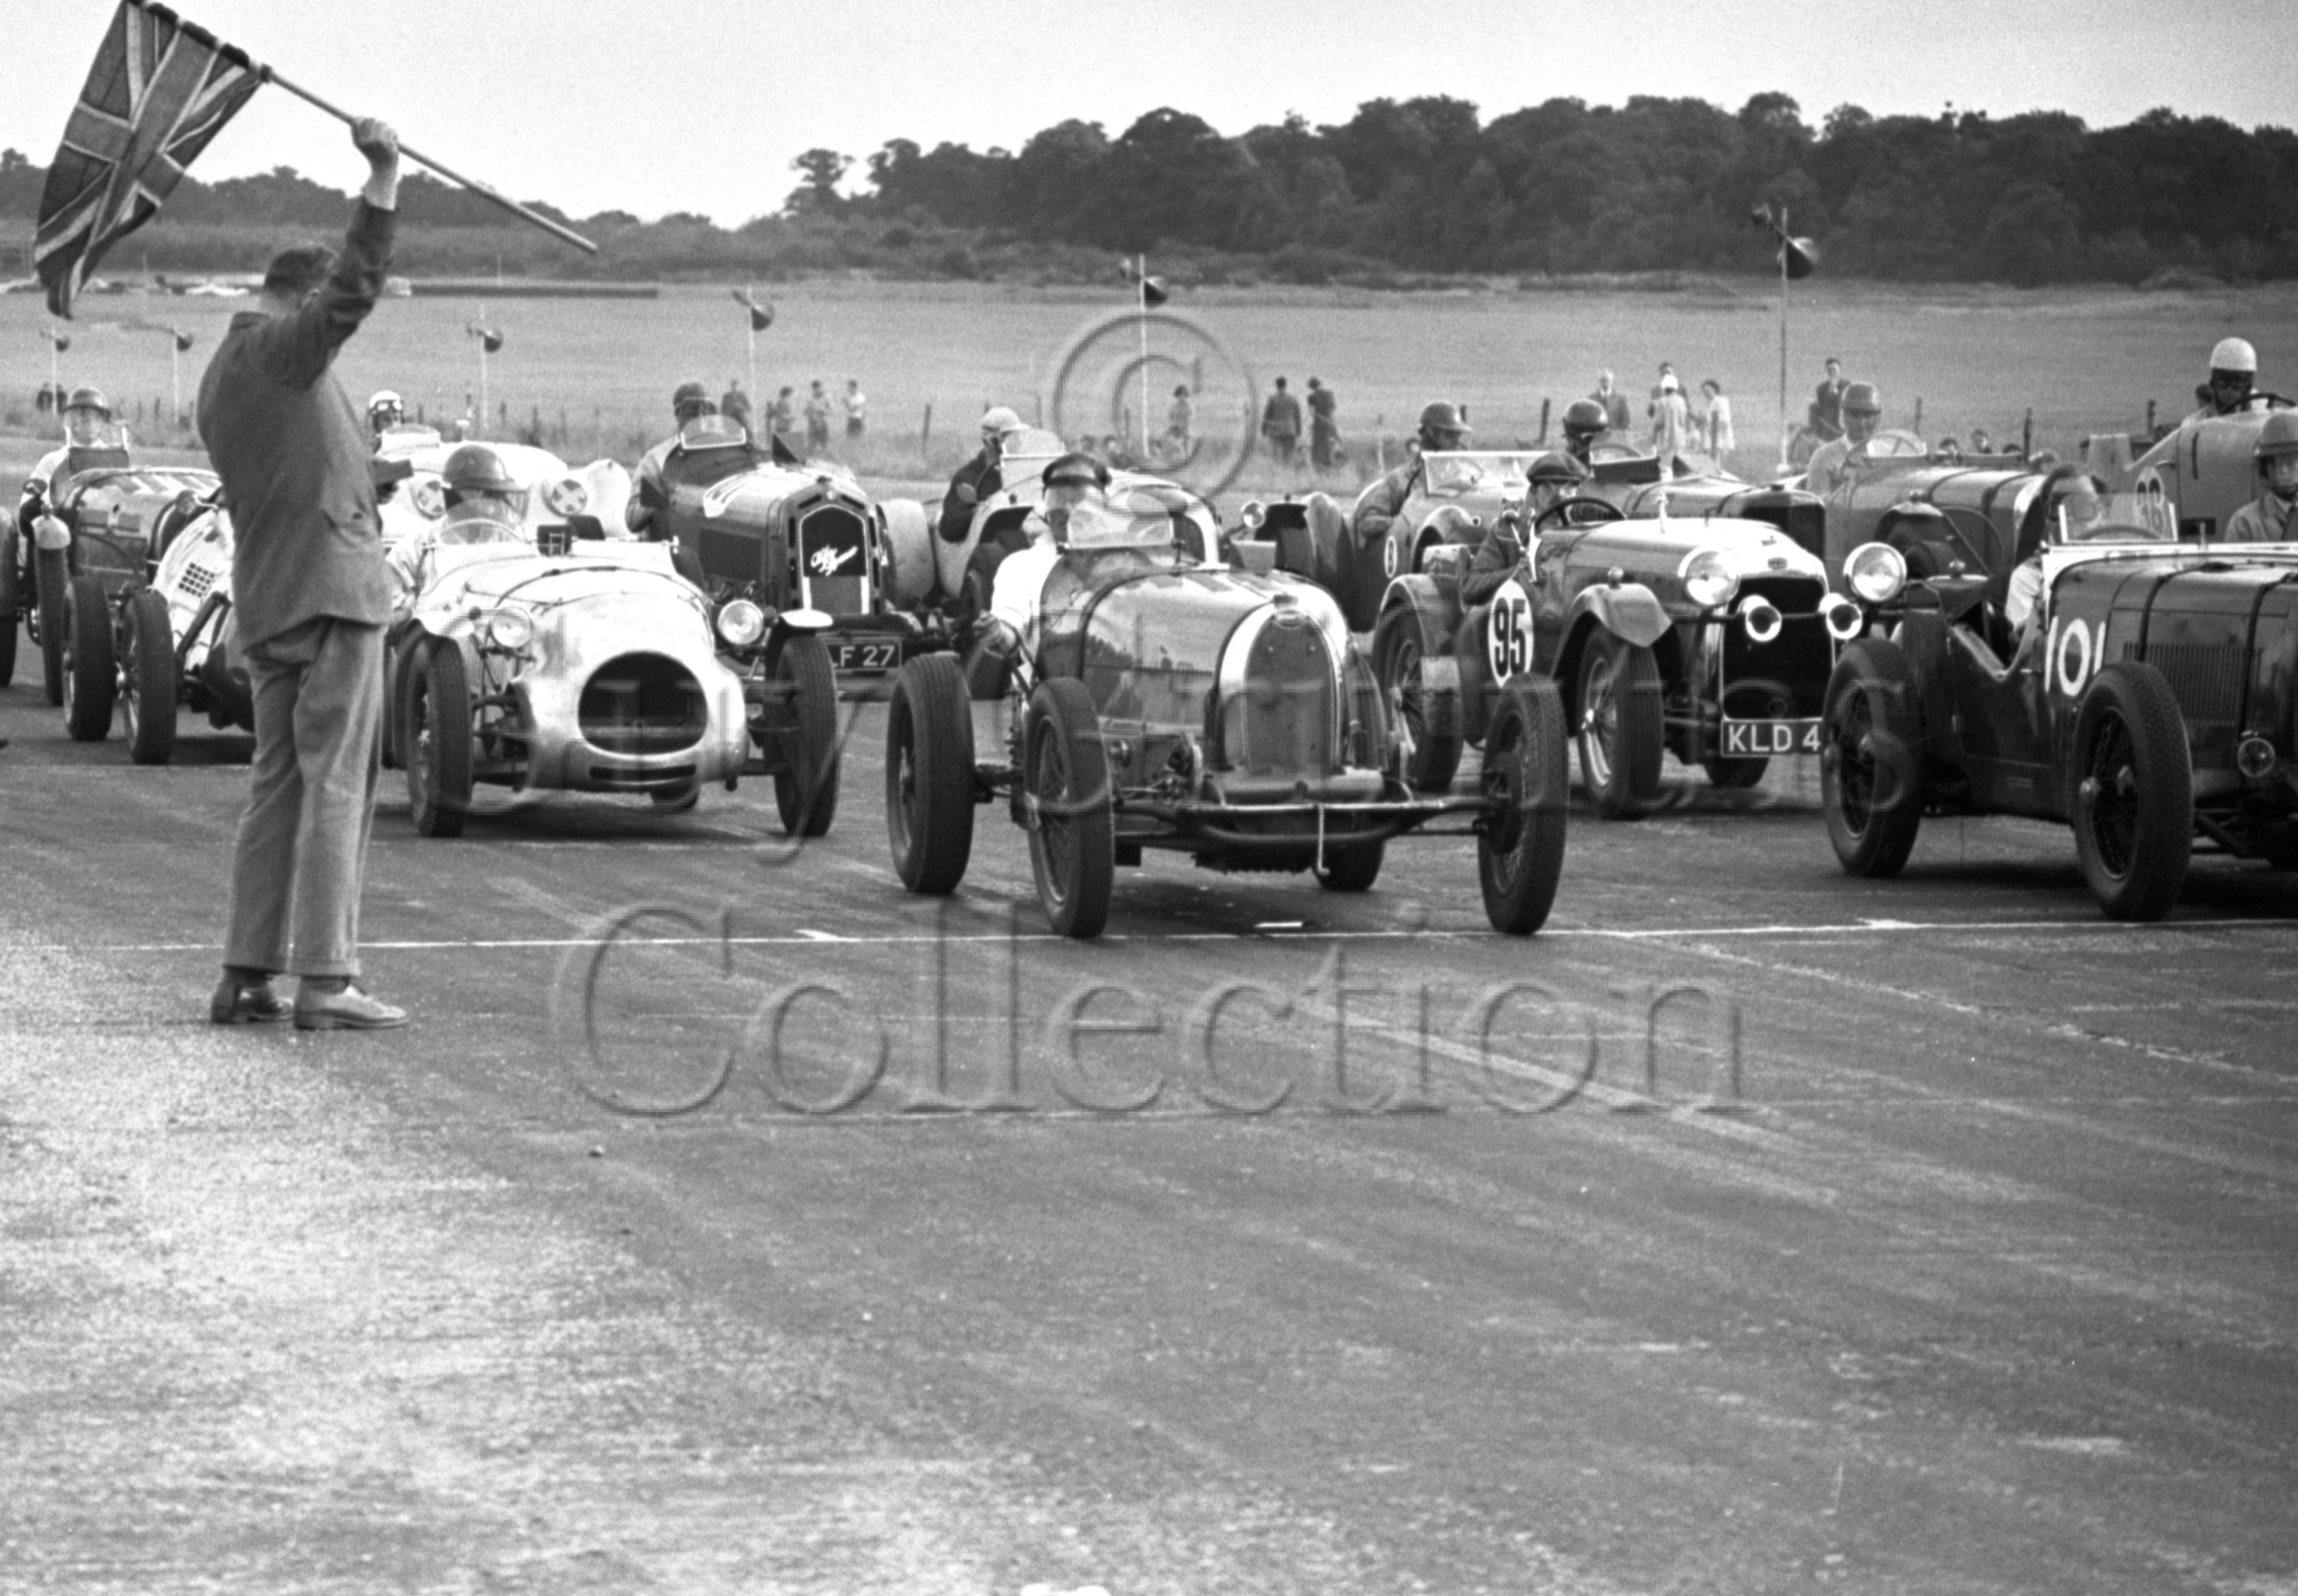 47-952–J-Ching–Bugatti–Silverstone–28-07-1951.jpg - The Guy Griffiths Collection